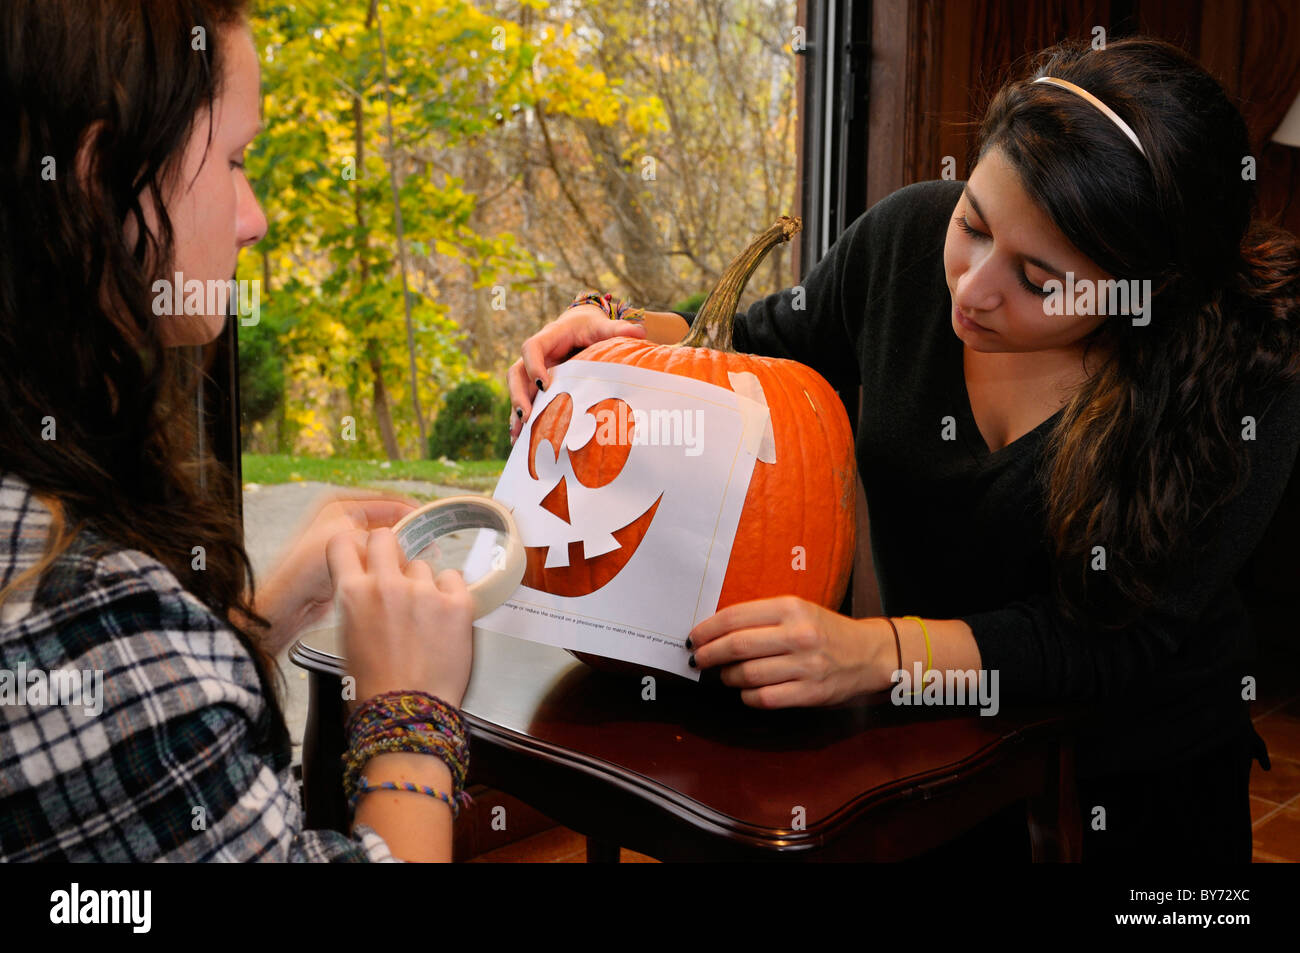 Two teenage girls applying a stencil of a face onto a pumpkin for carving a Halloween Jack O Lantern - Stock Image